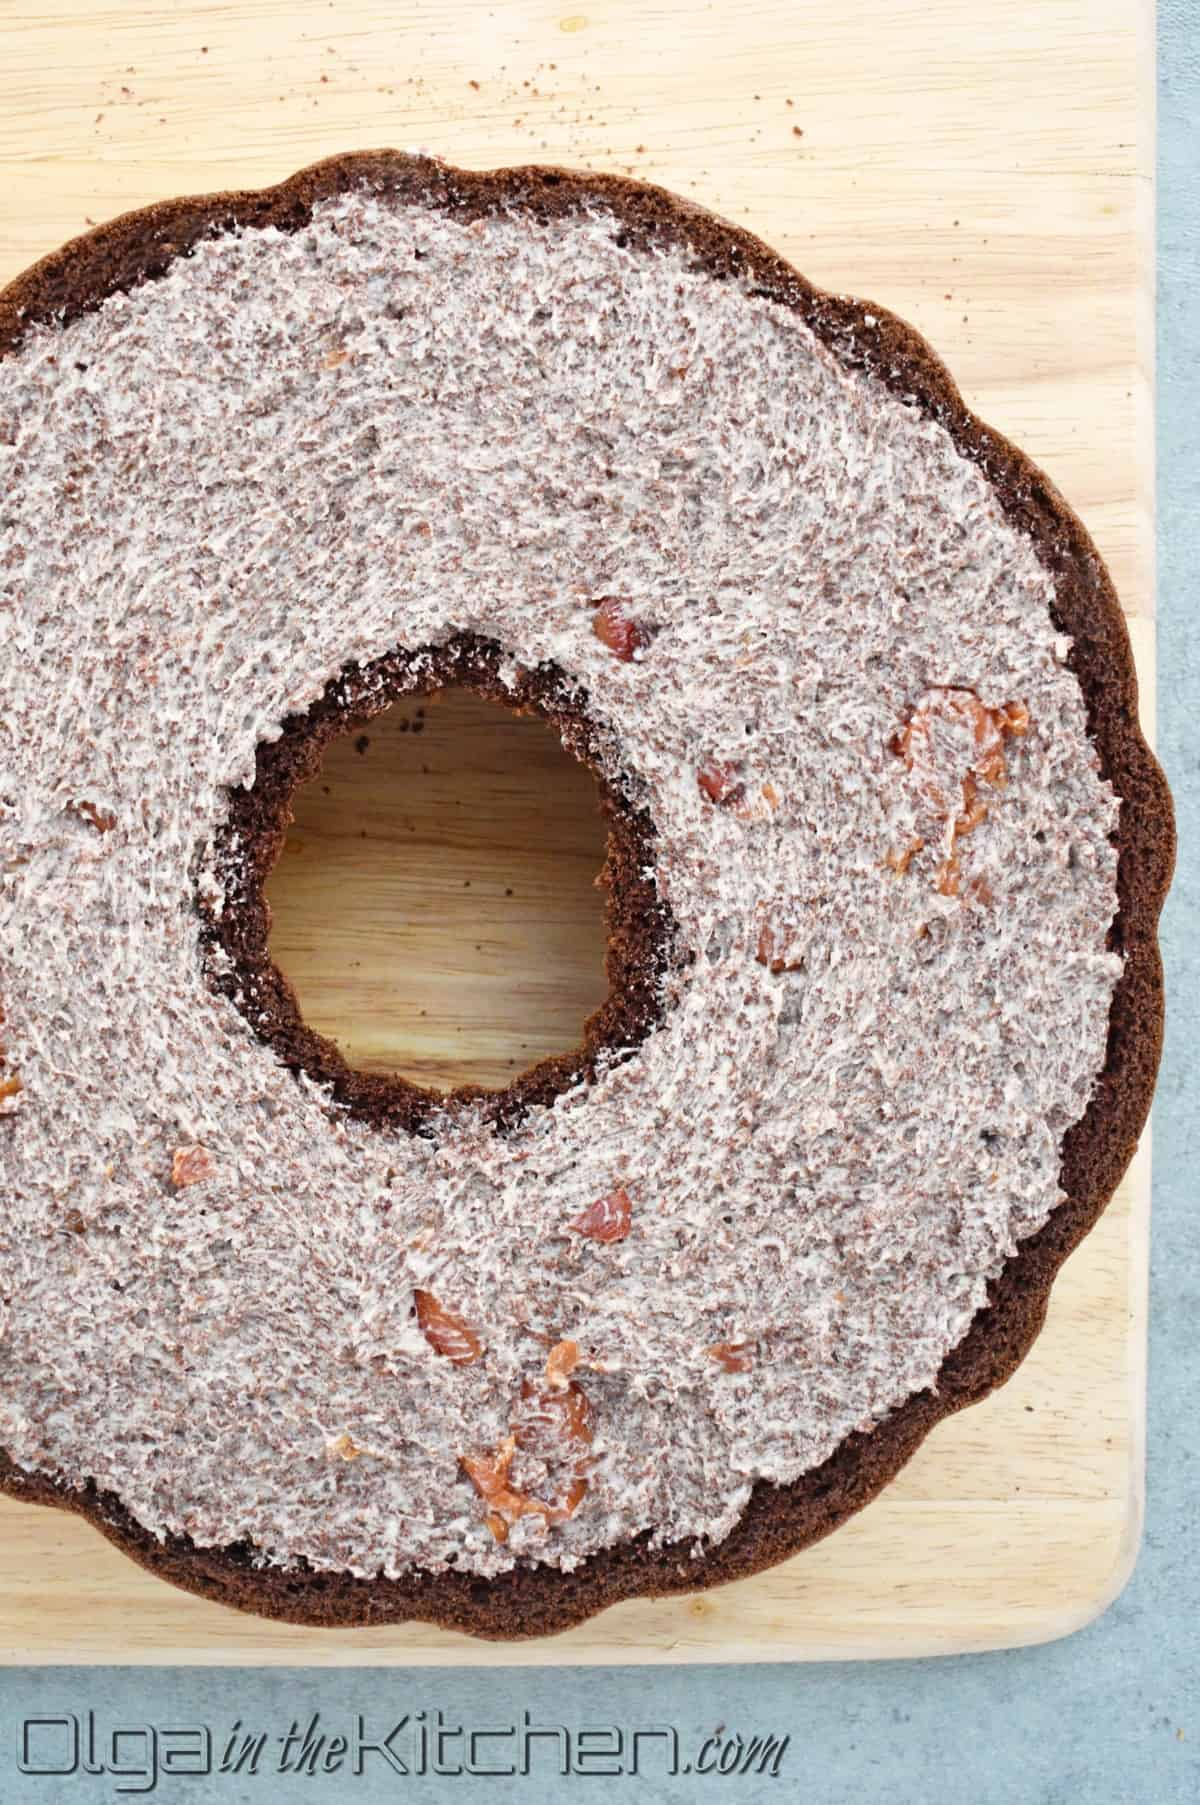 filling chocolate bundt cake